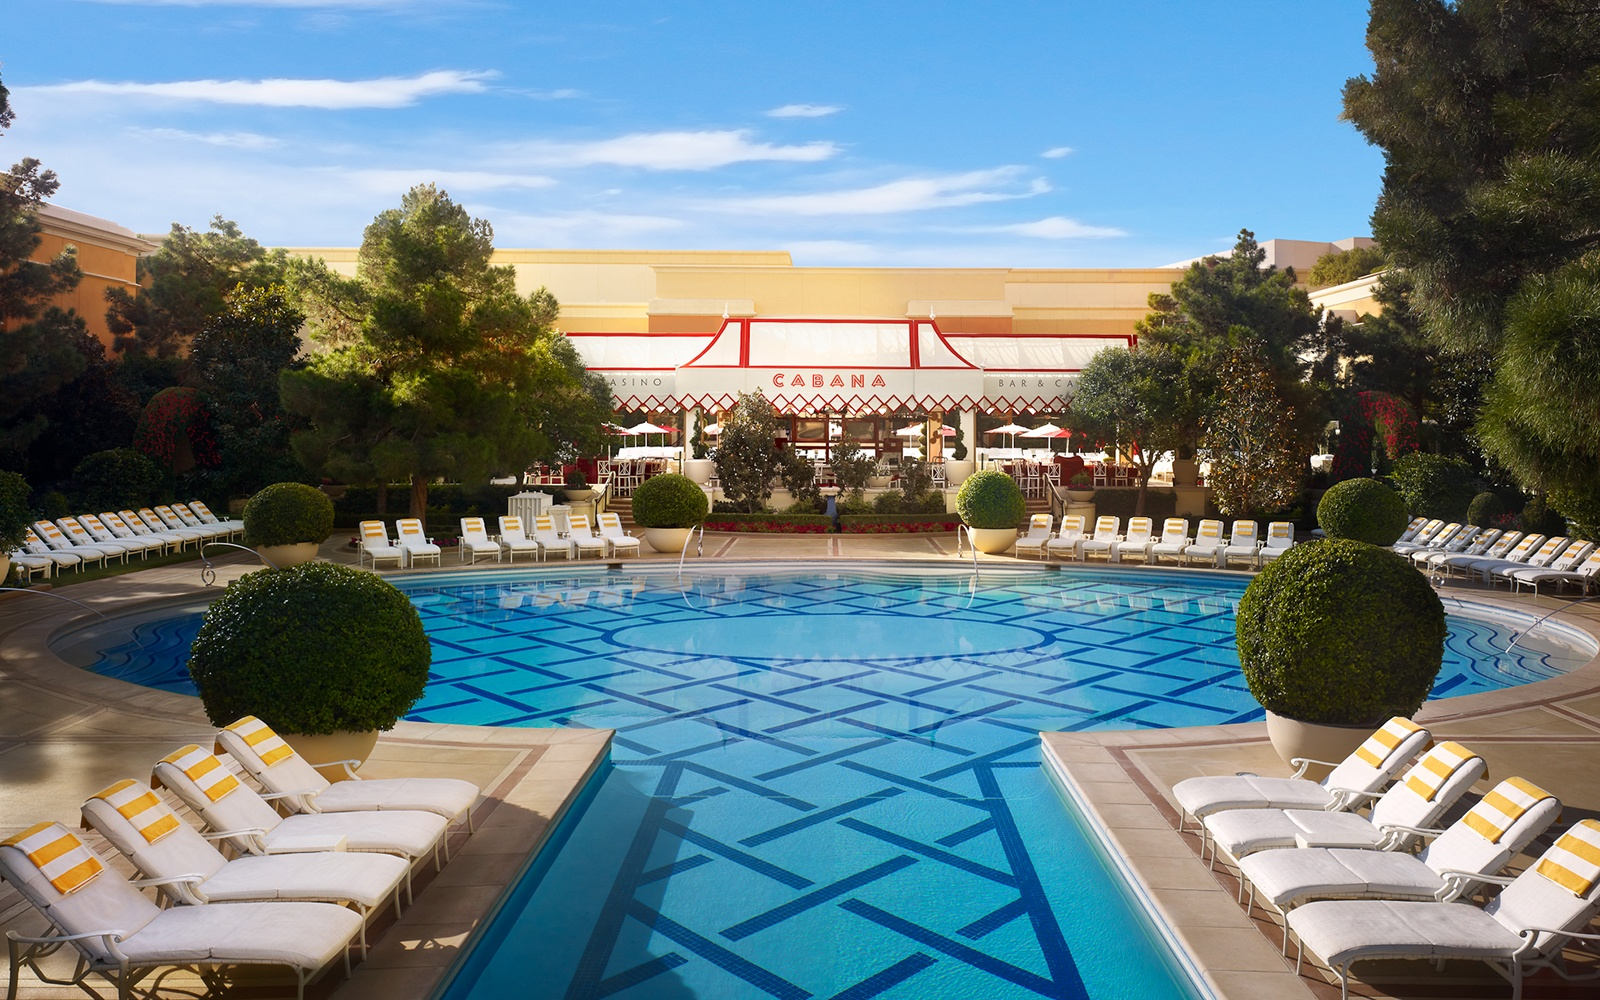 Vegas Best Pools, From Dayclubs To Djs  Travel  Leisure-3205